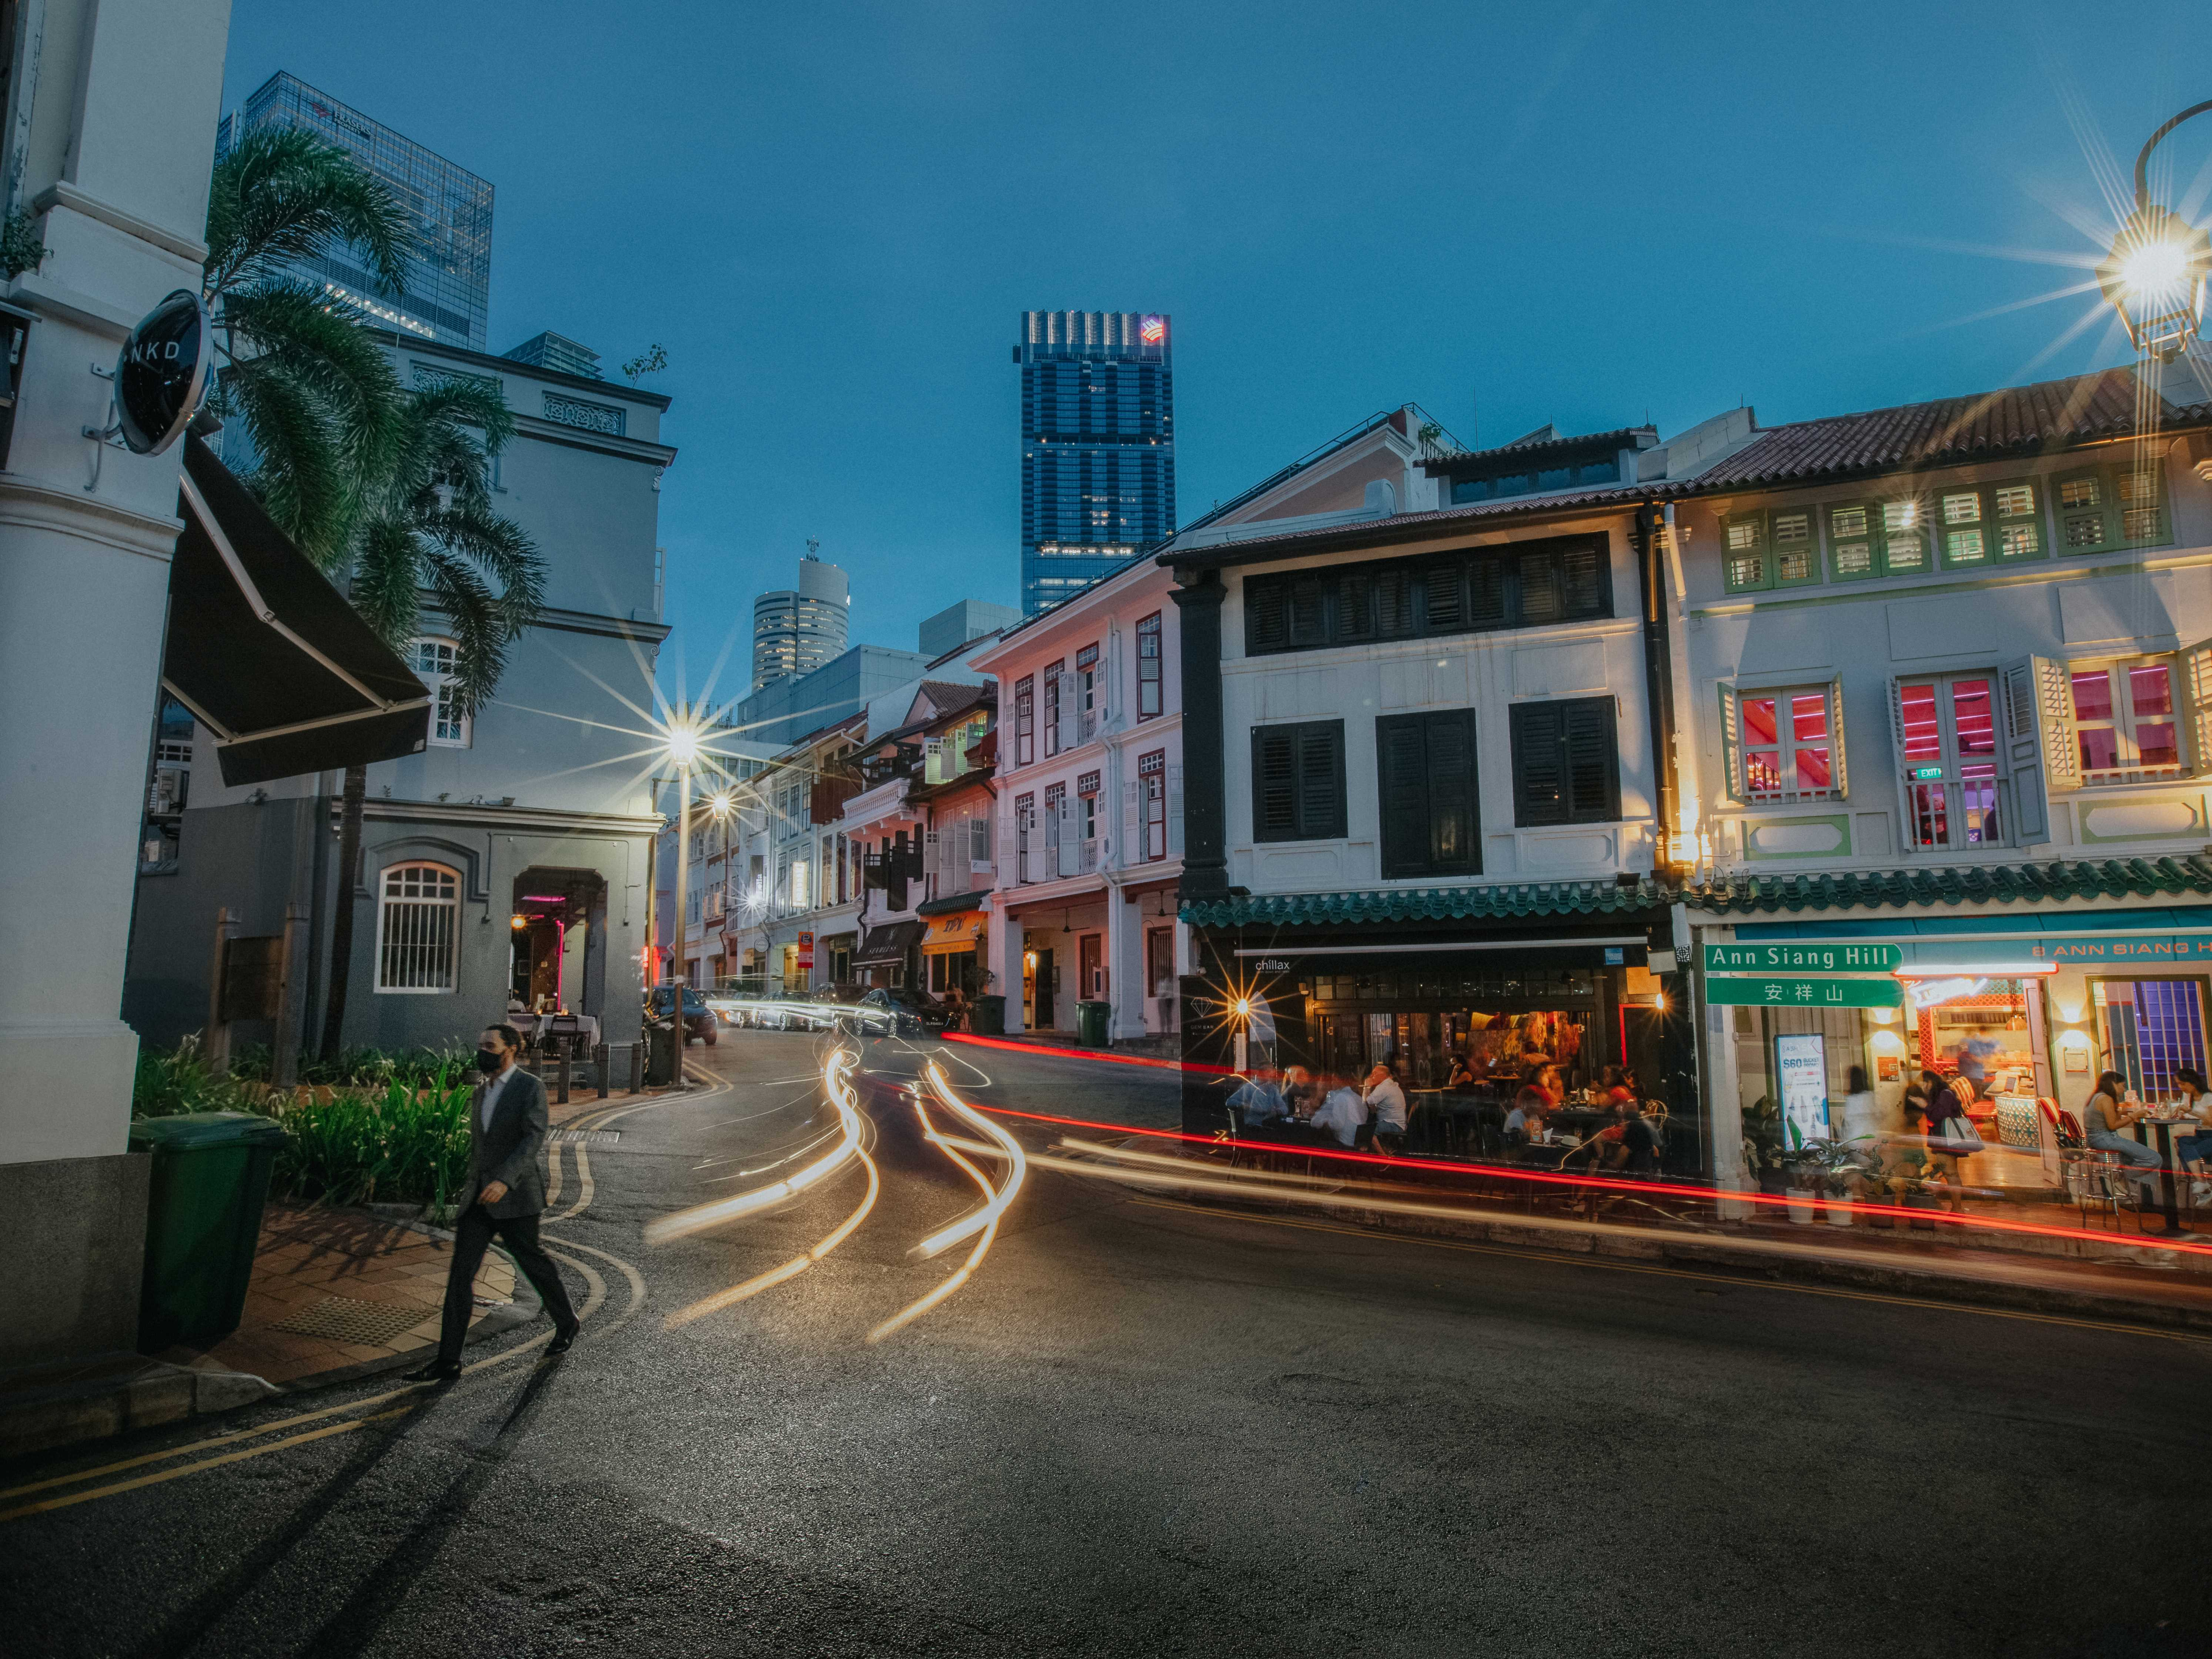 Chinatown Singapore An Siang Hill